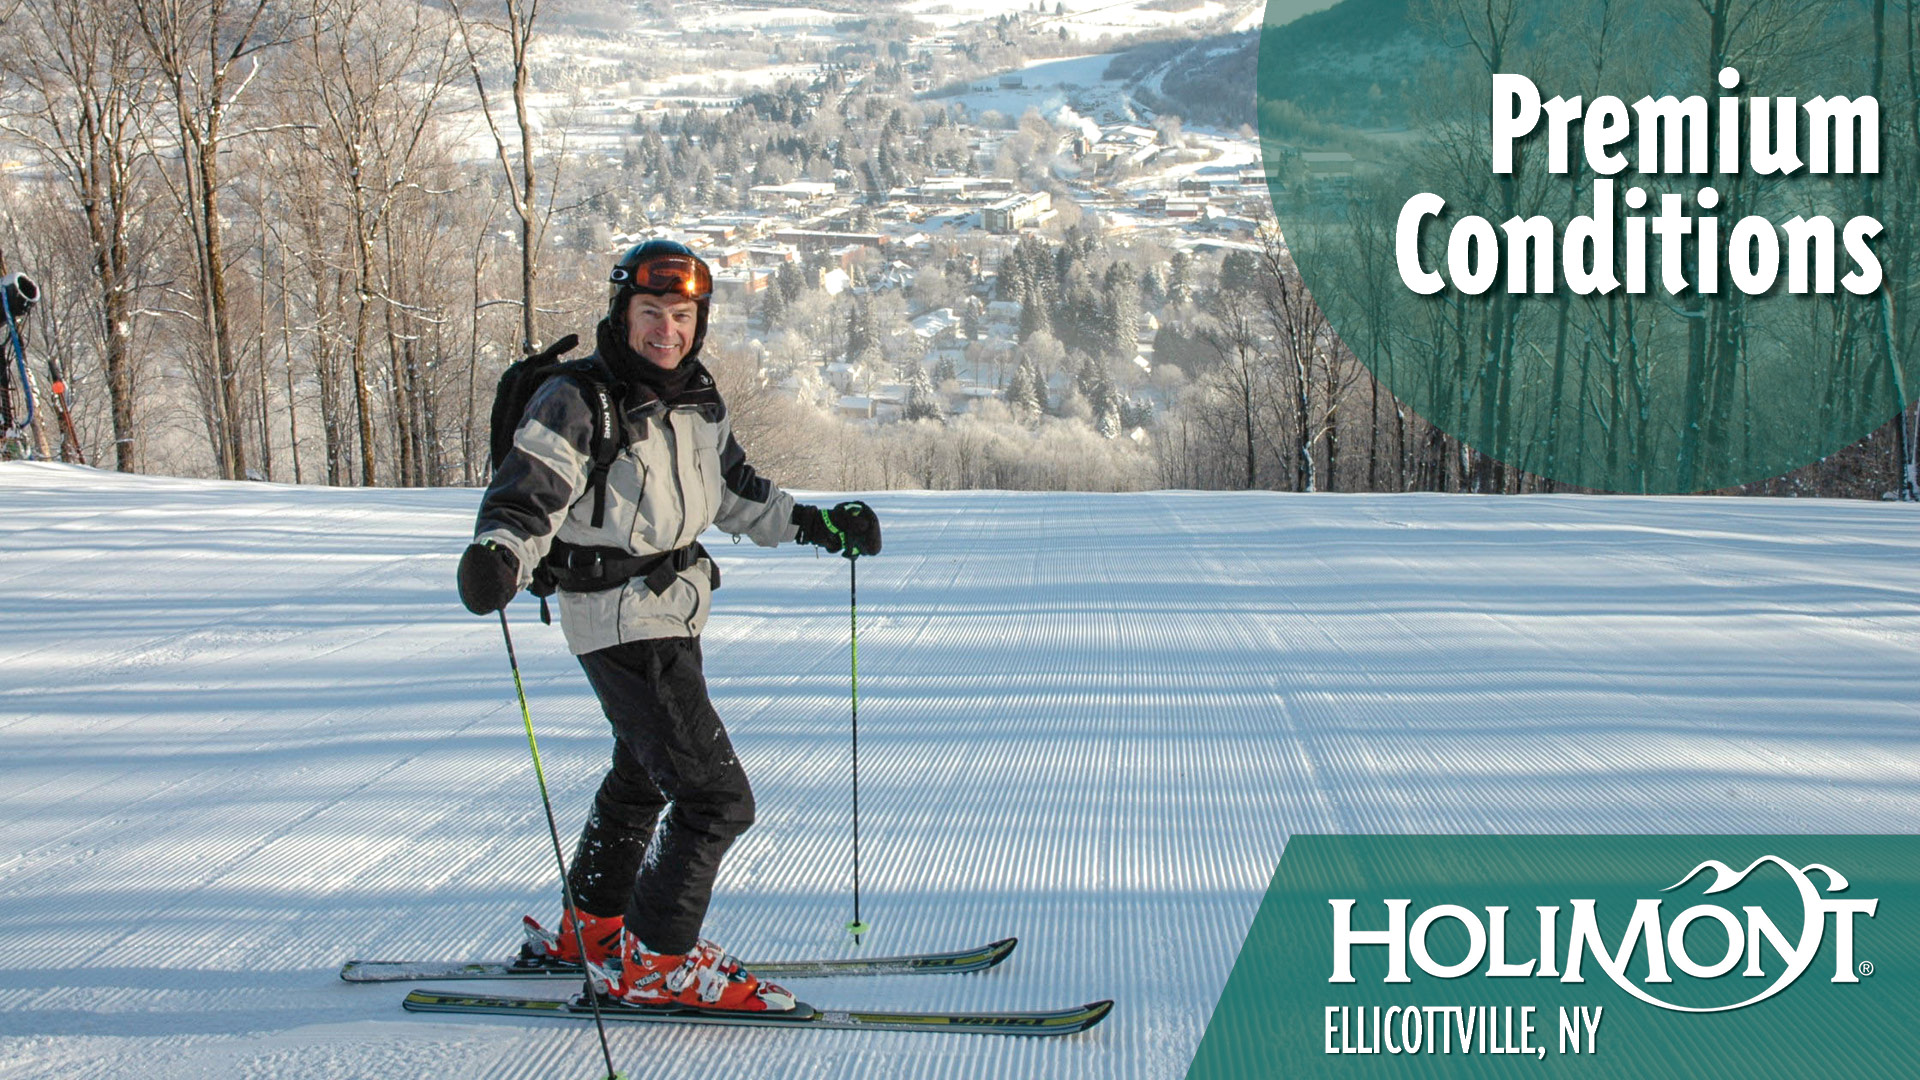 Holimont Conditions